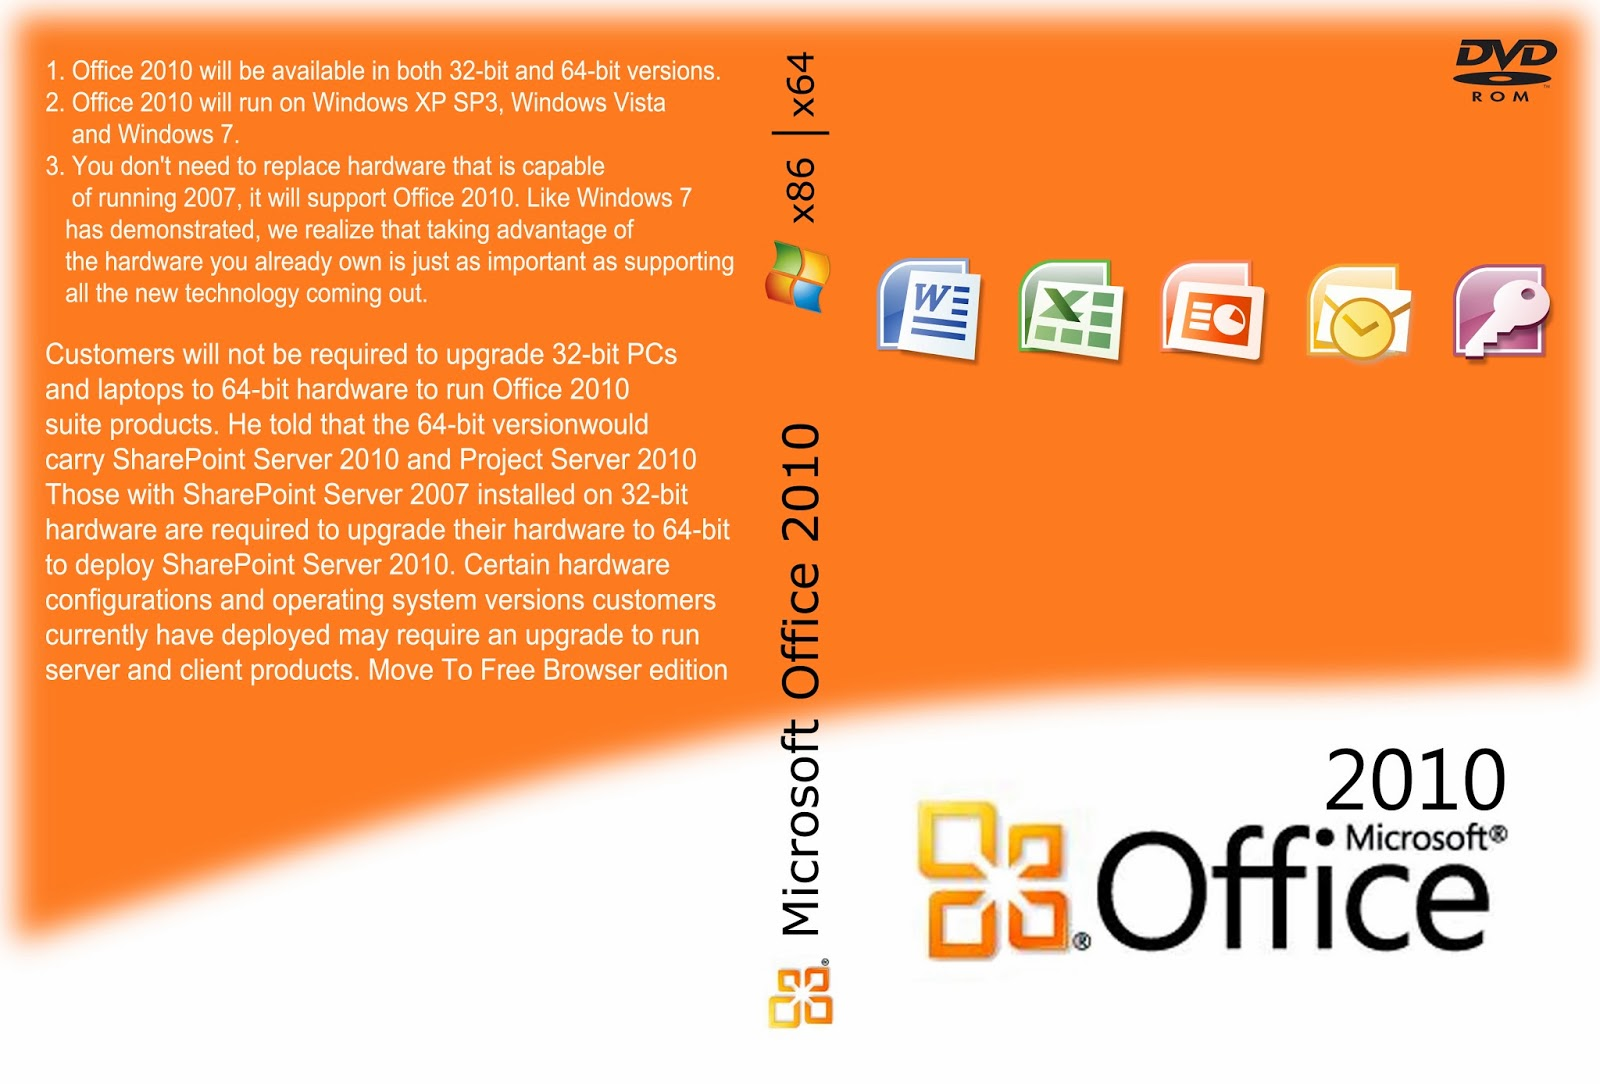 Microsoft Office Windows 7 Mysticodes Microsoft Office 2010 All Editions